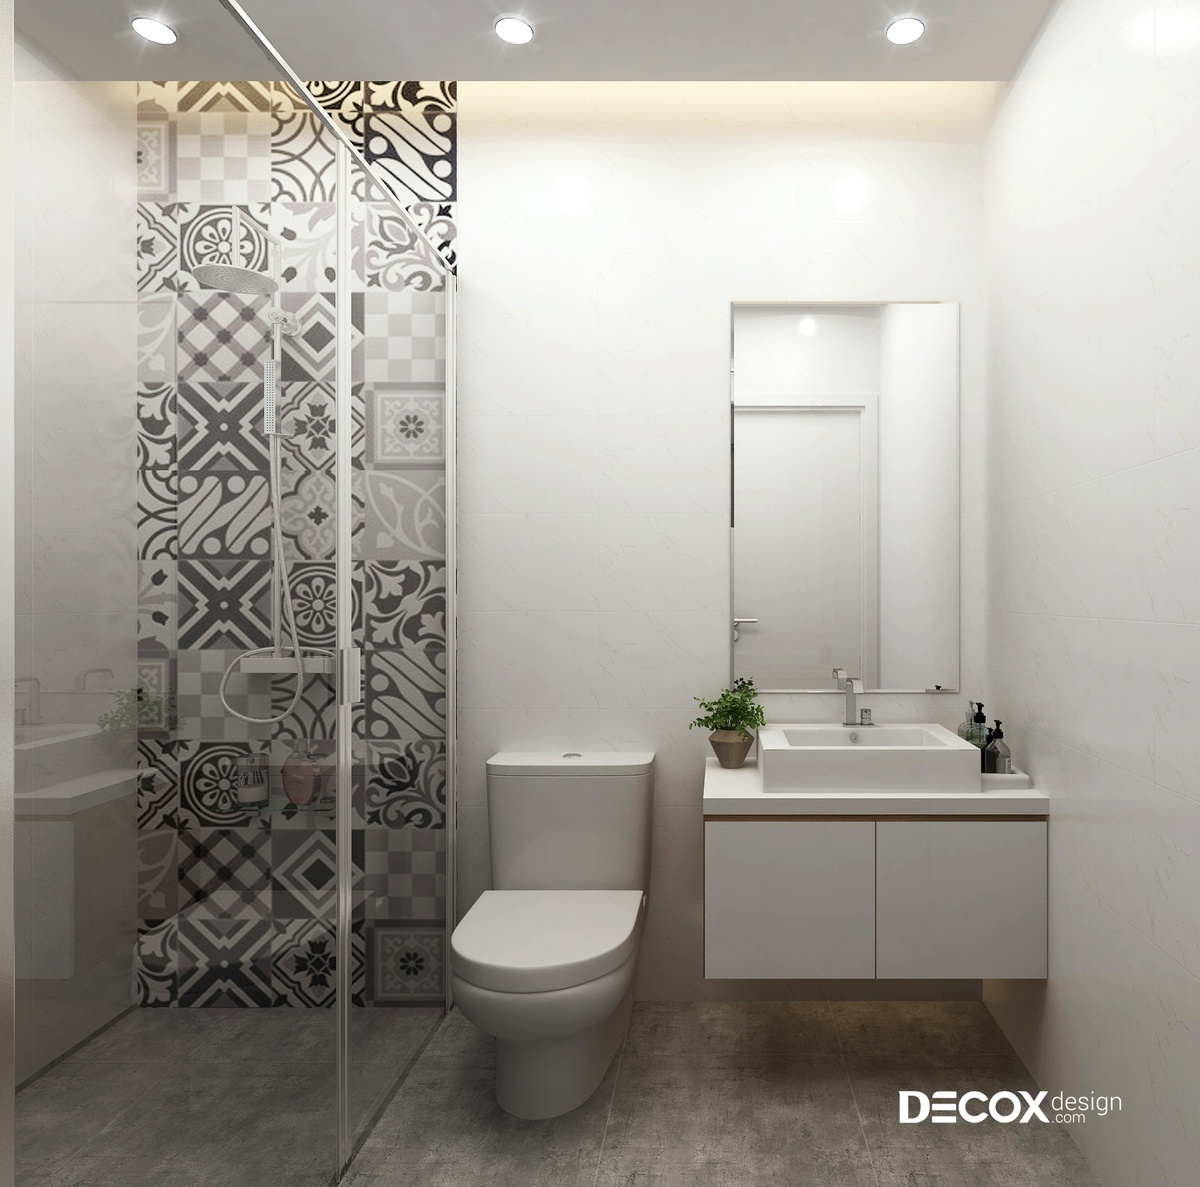 thiet-ke-noi-that-palm-heights-120m2-m190005-wc-master-24-decox-design